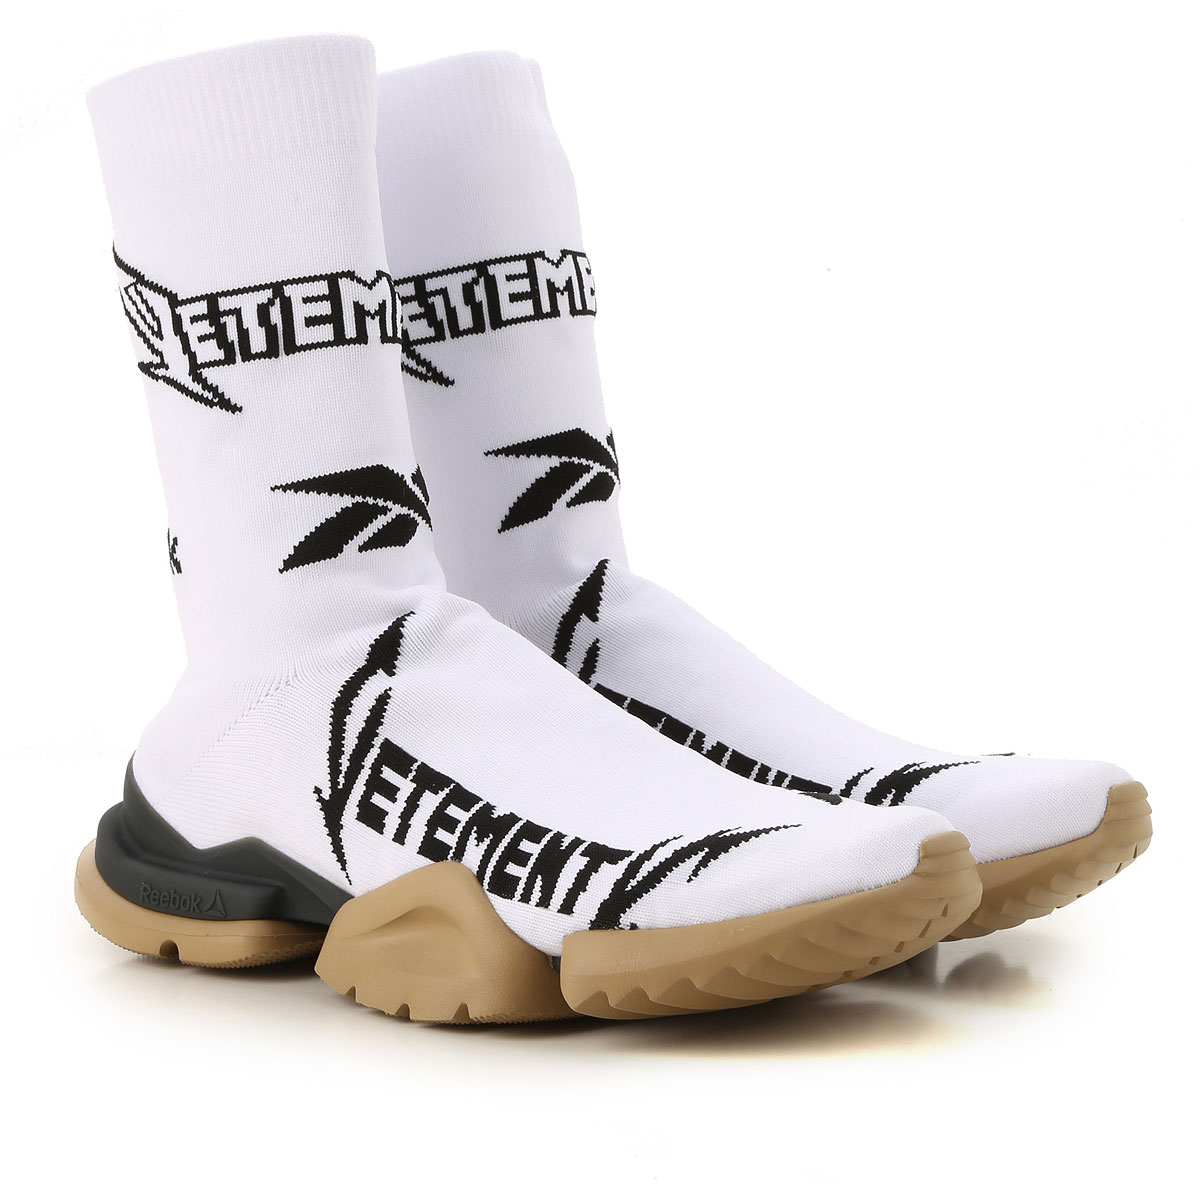 Vetements Sneakers for Men On Sale in Outlet, White, Textile, 2019, 10 10.25 11 9 9.5